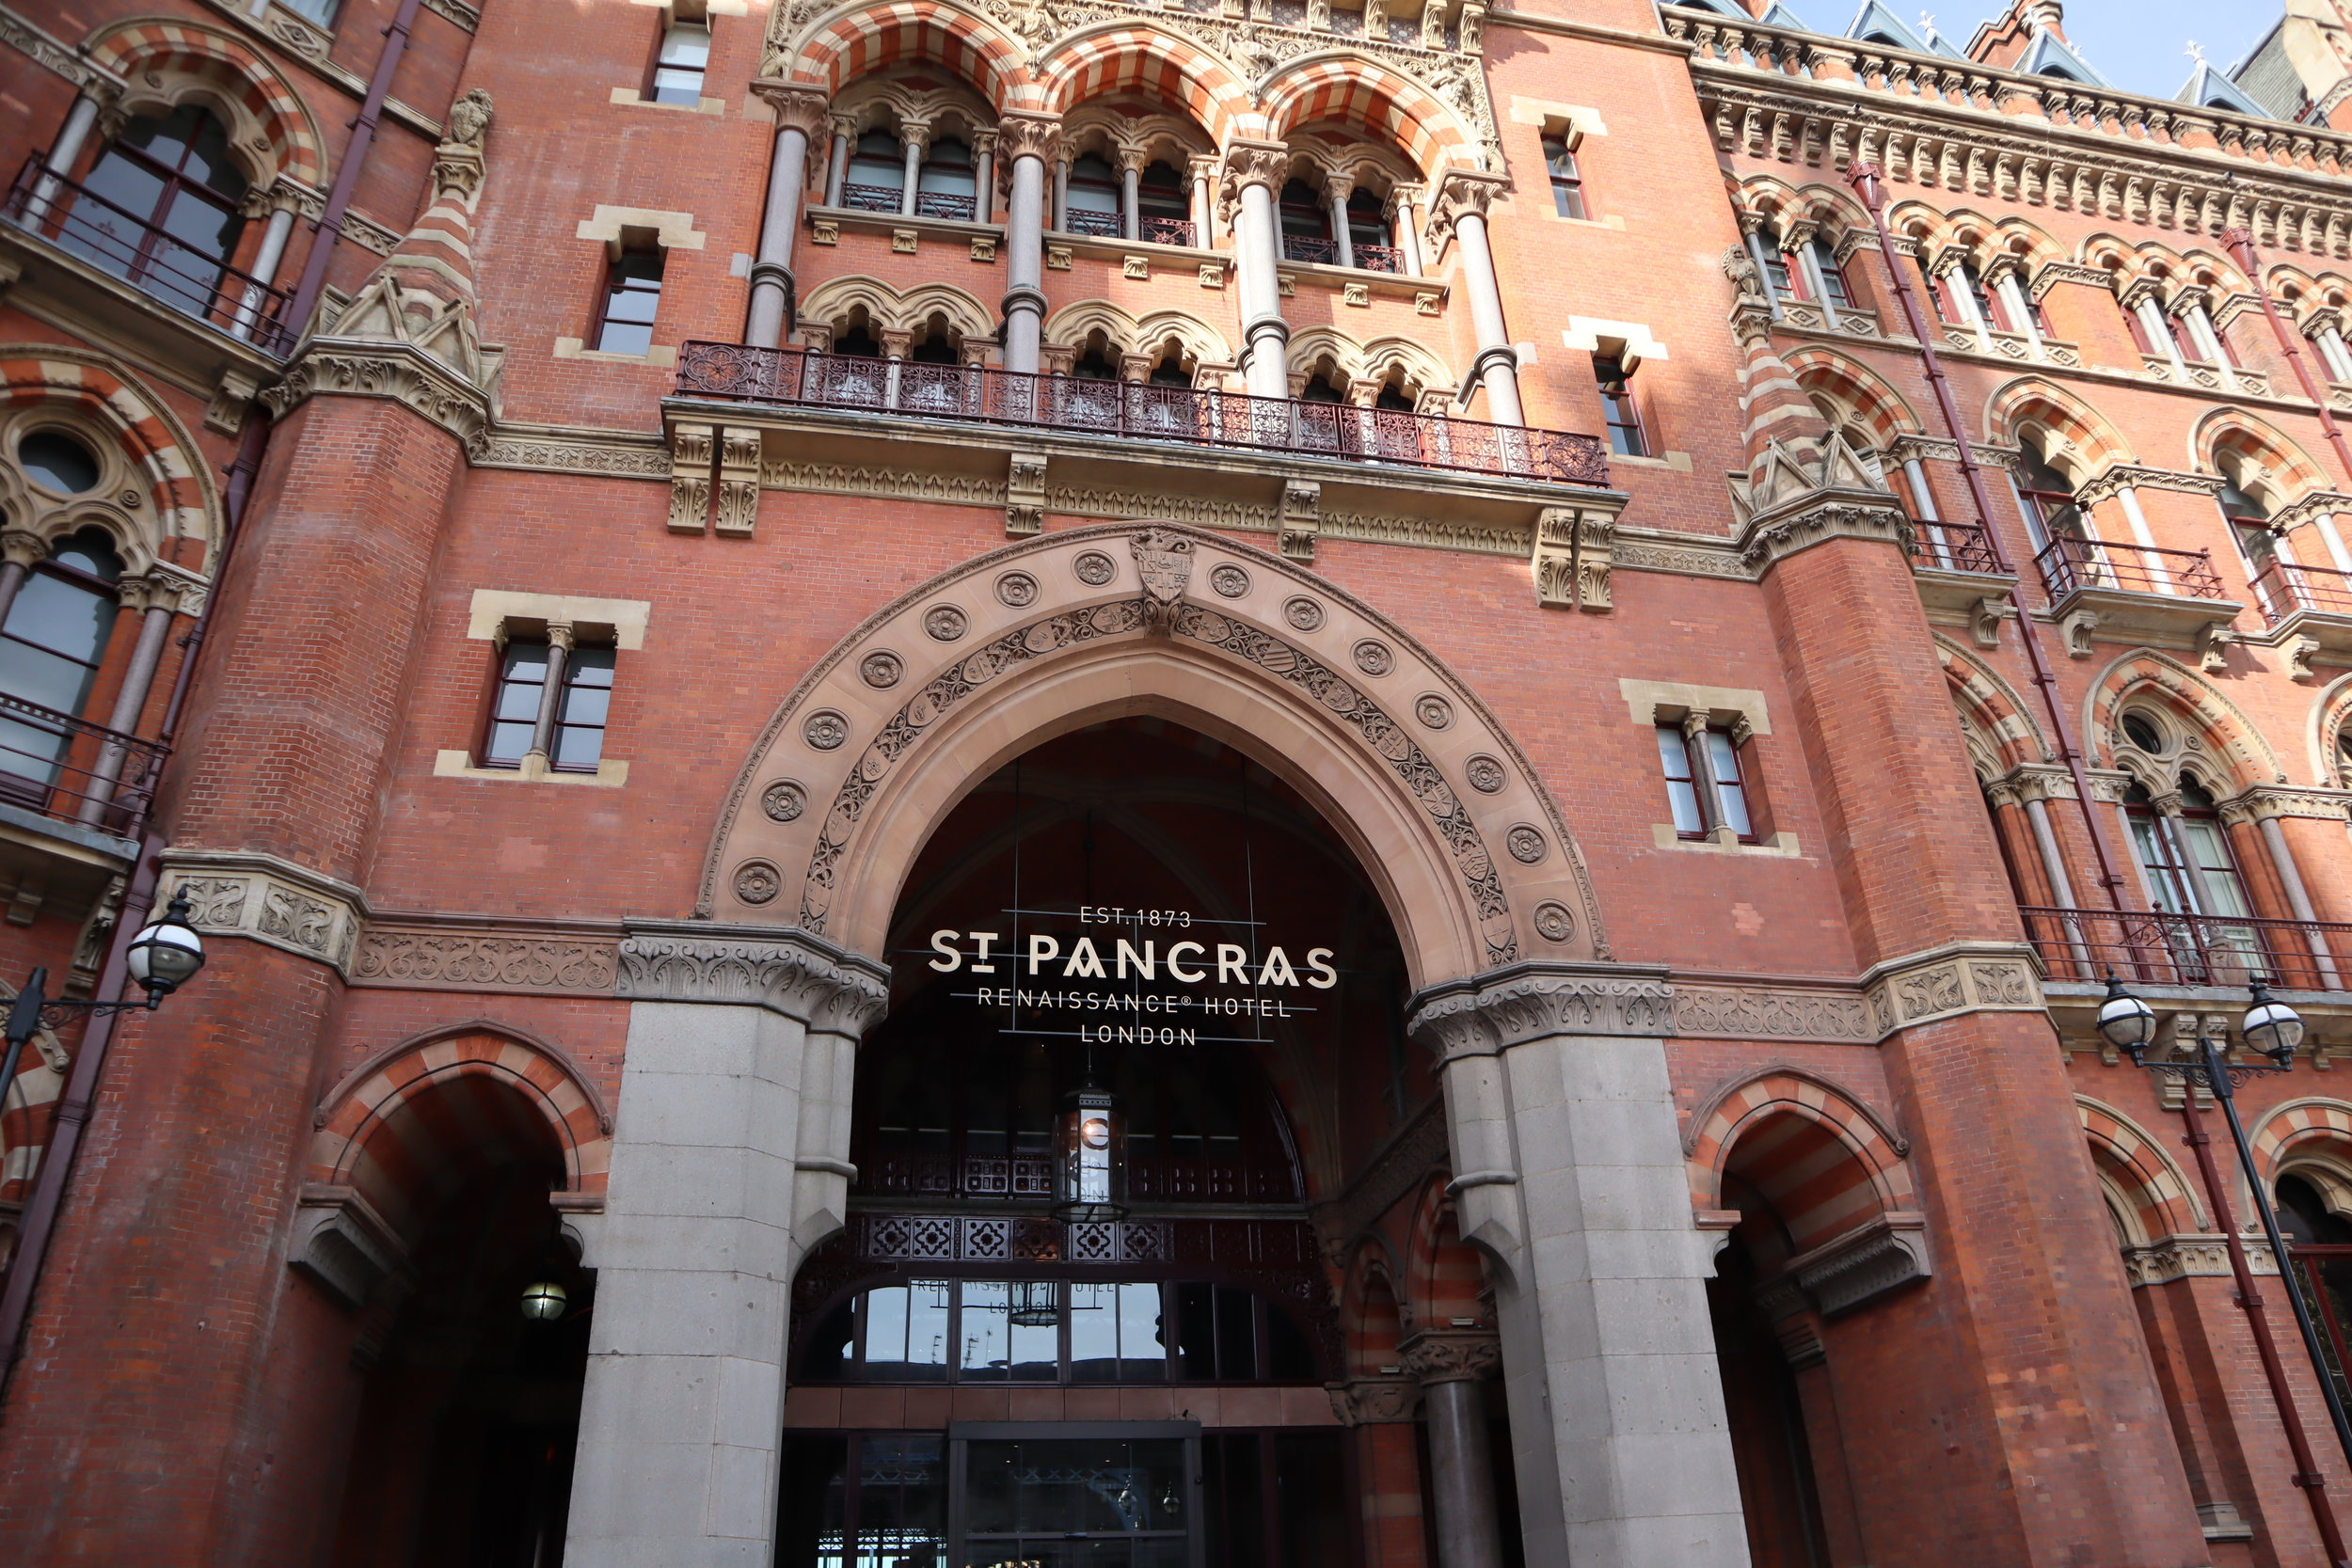 St. Pancras Renaissance Hotel London – Entrance